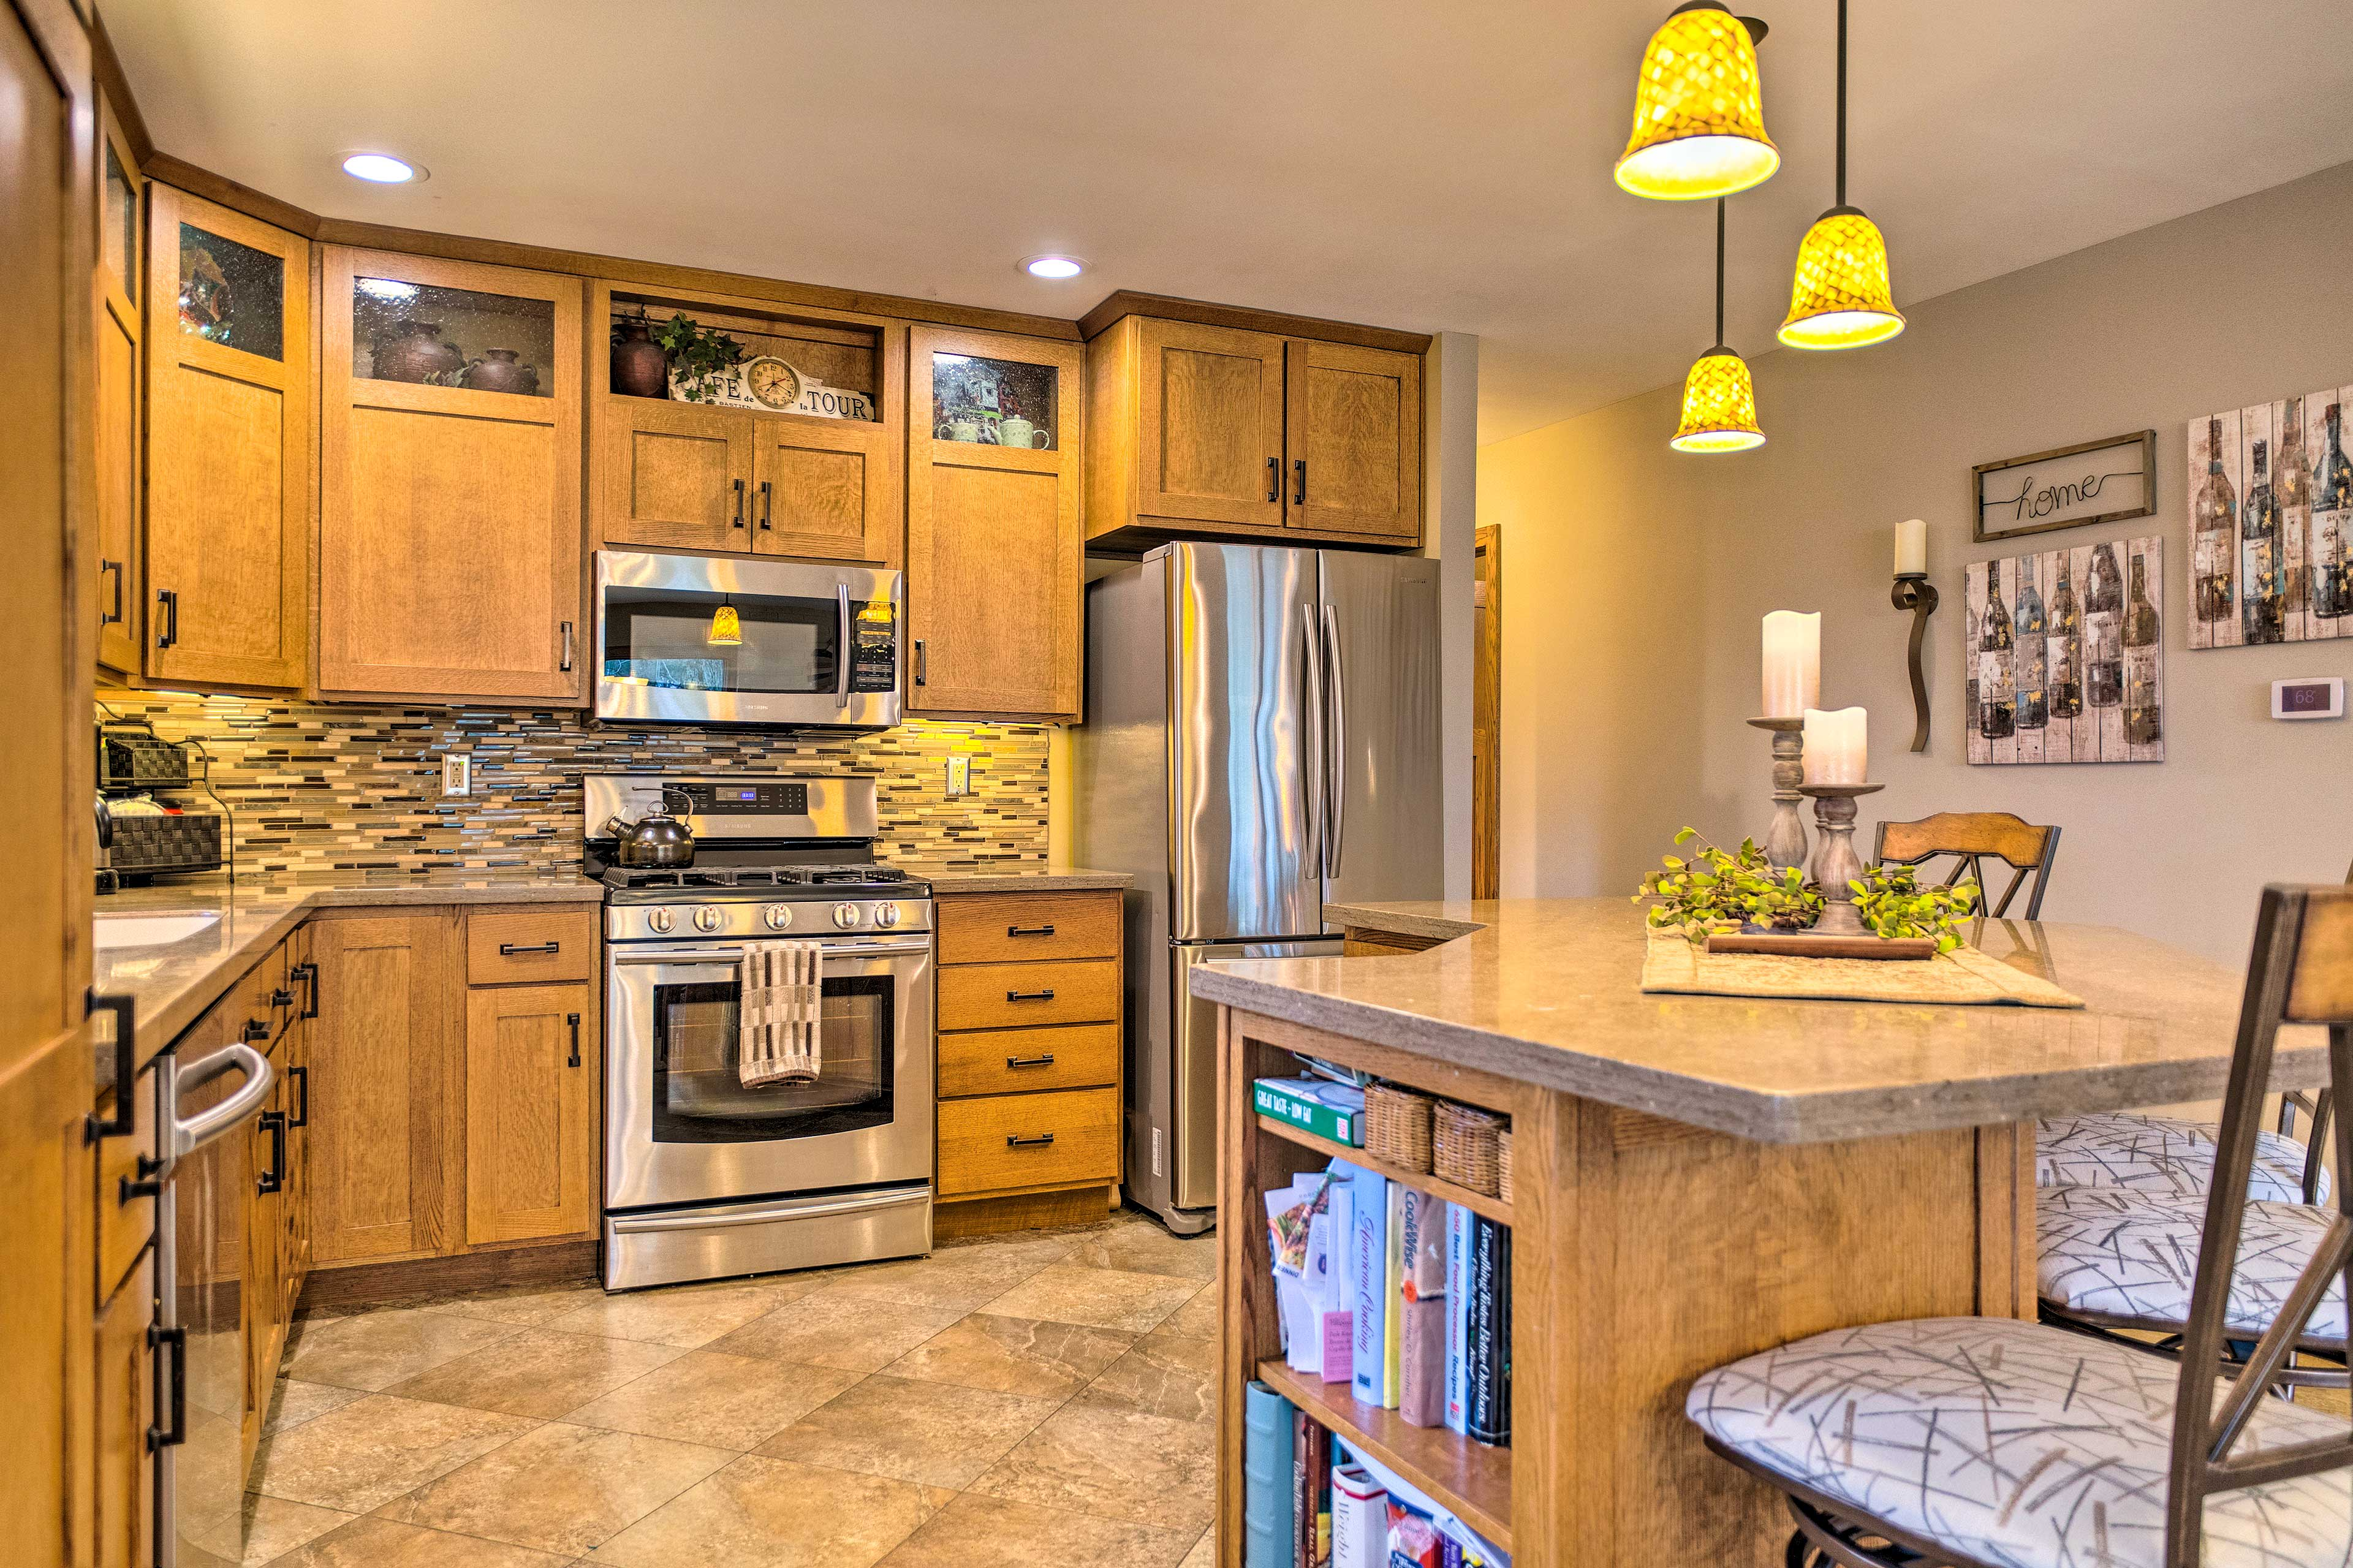 Stainless steel appliances add a modern touch to the fully equipped kitchen.